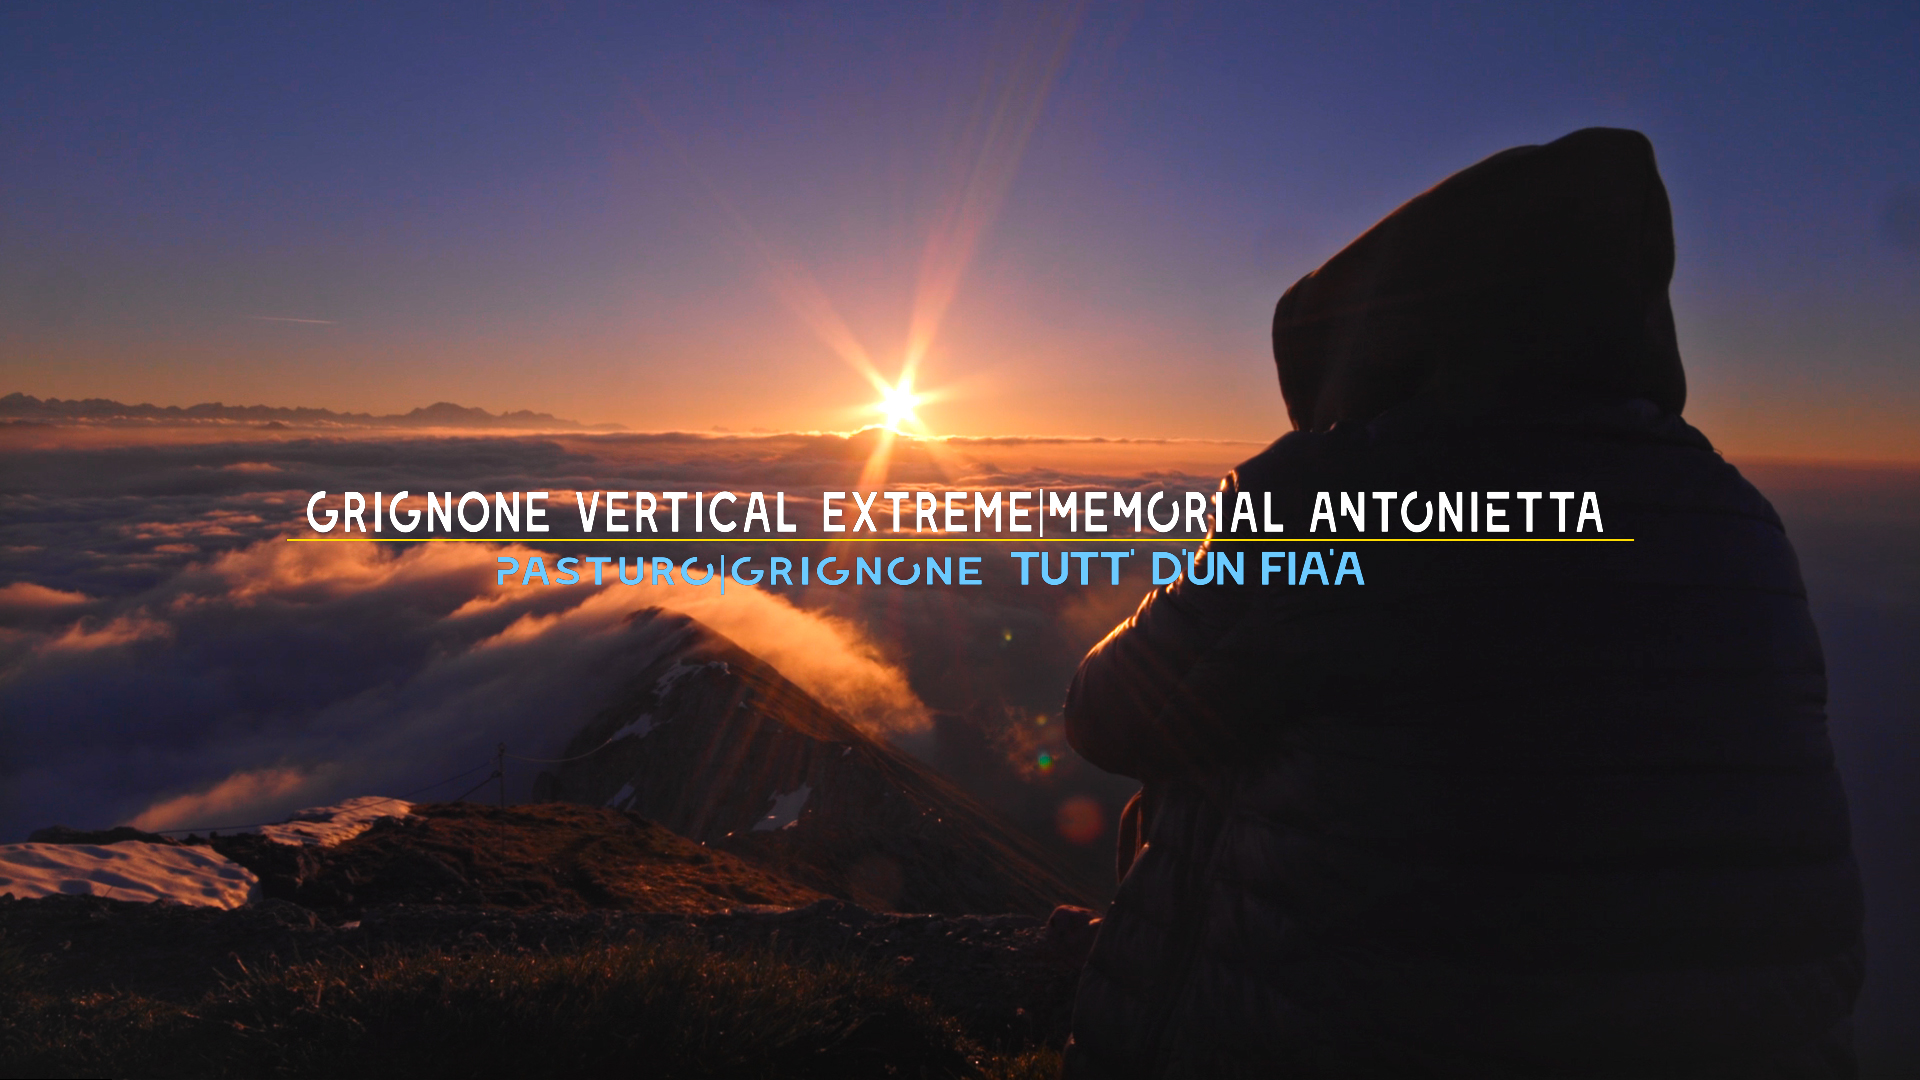 Grignone Vertical Extreme 2017 | Official Video Report